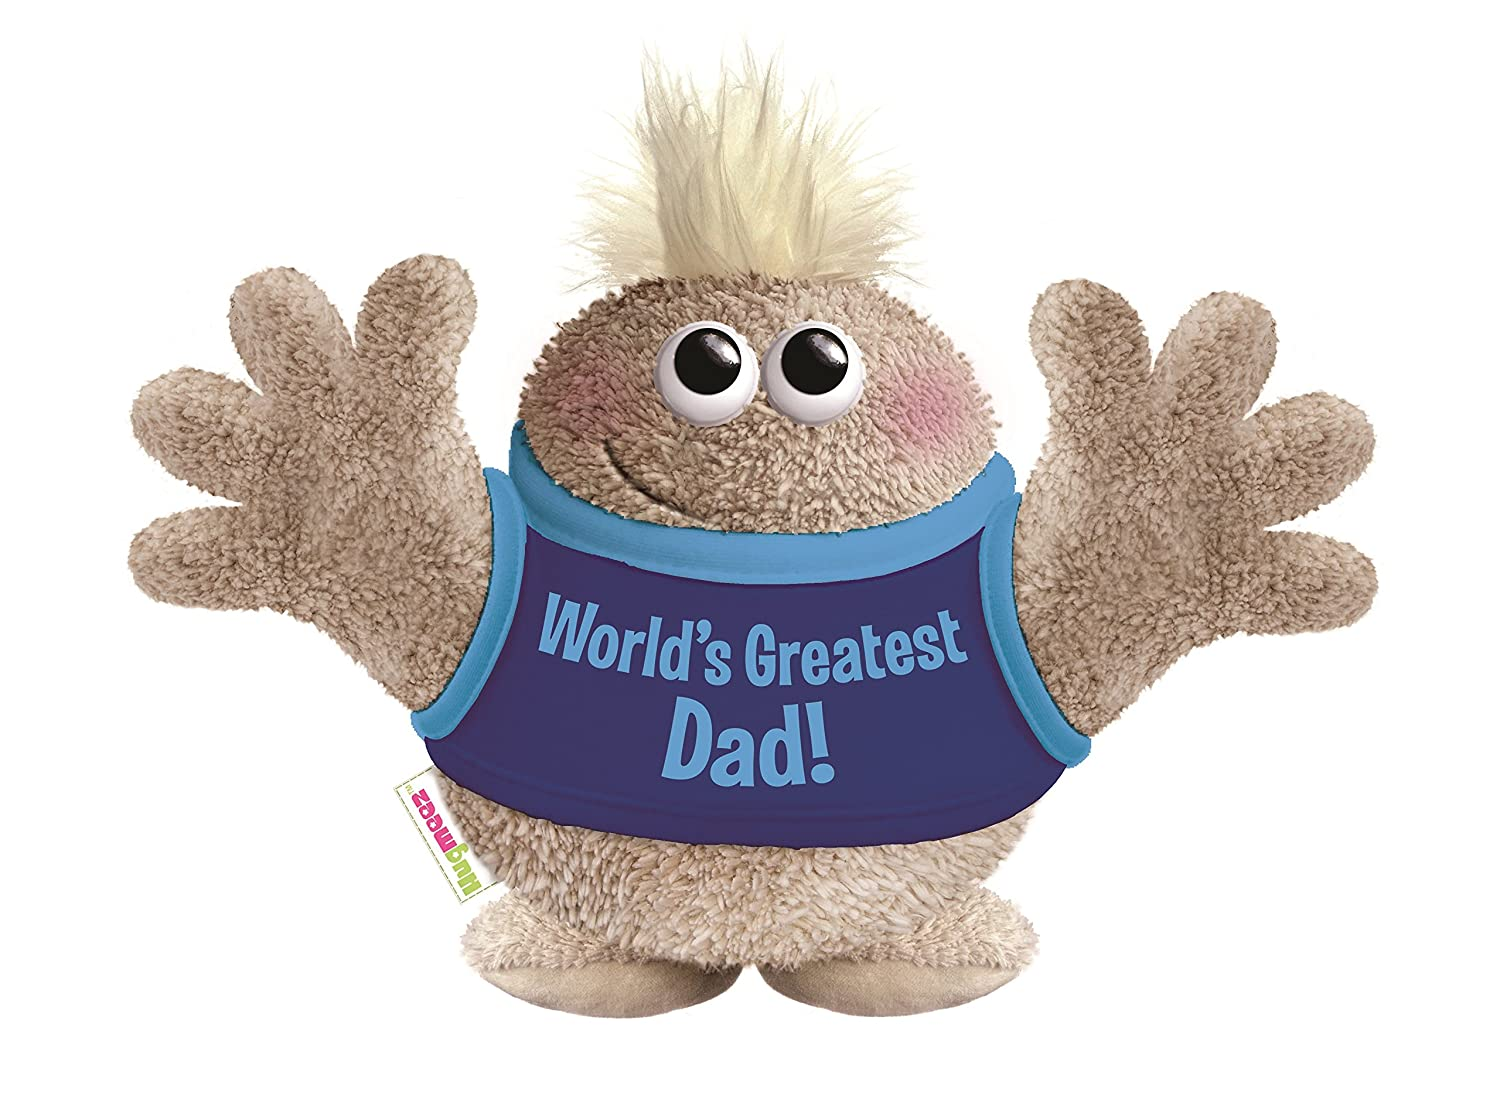 Beige Hugmeez Childrens Worlds Greatest Dad Plush Toy 8 Tall 8 Tall Millennium Products Group us toys HM-314